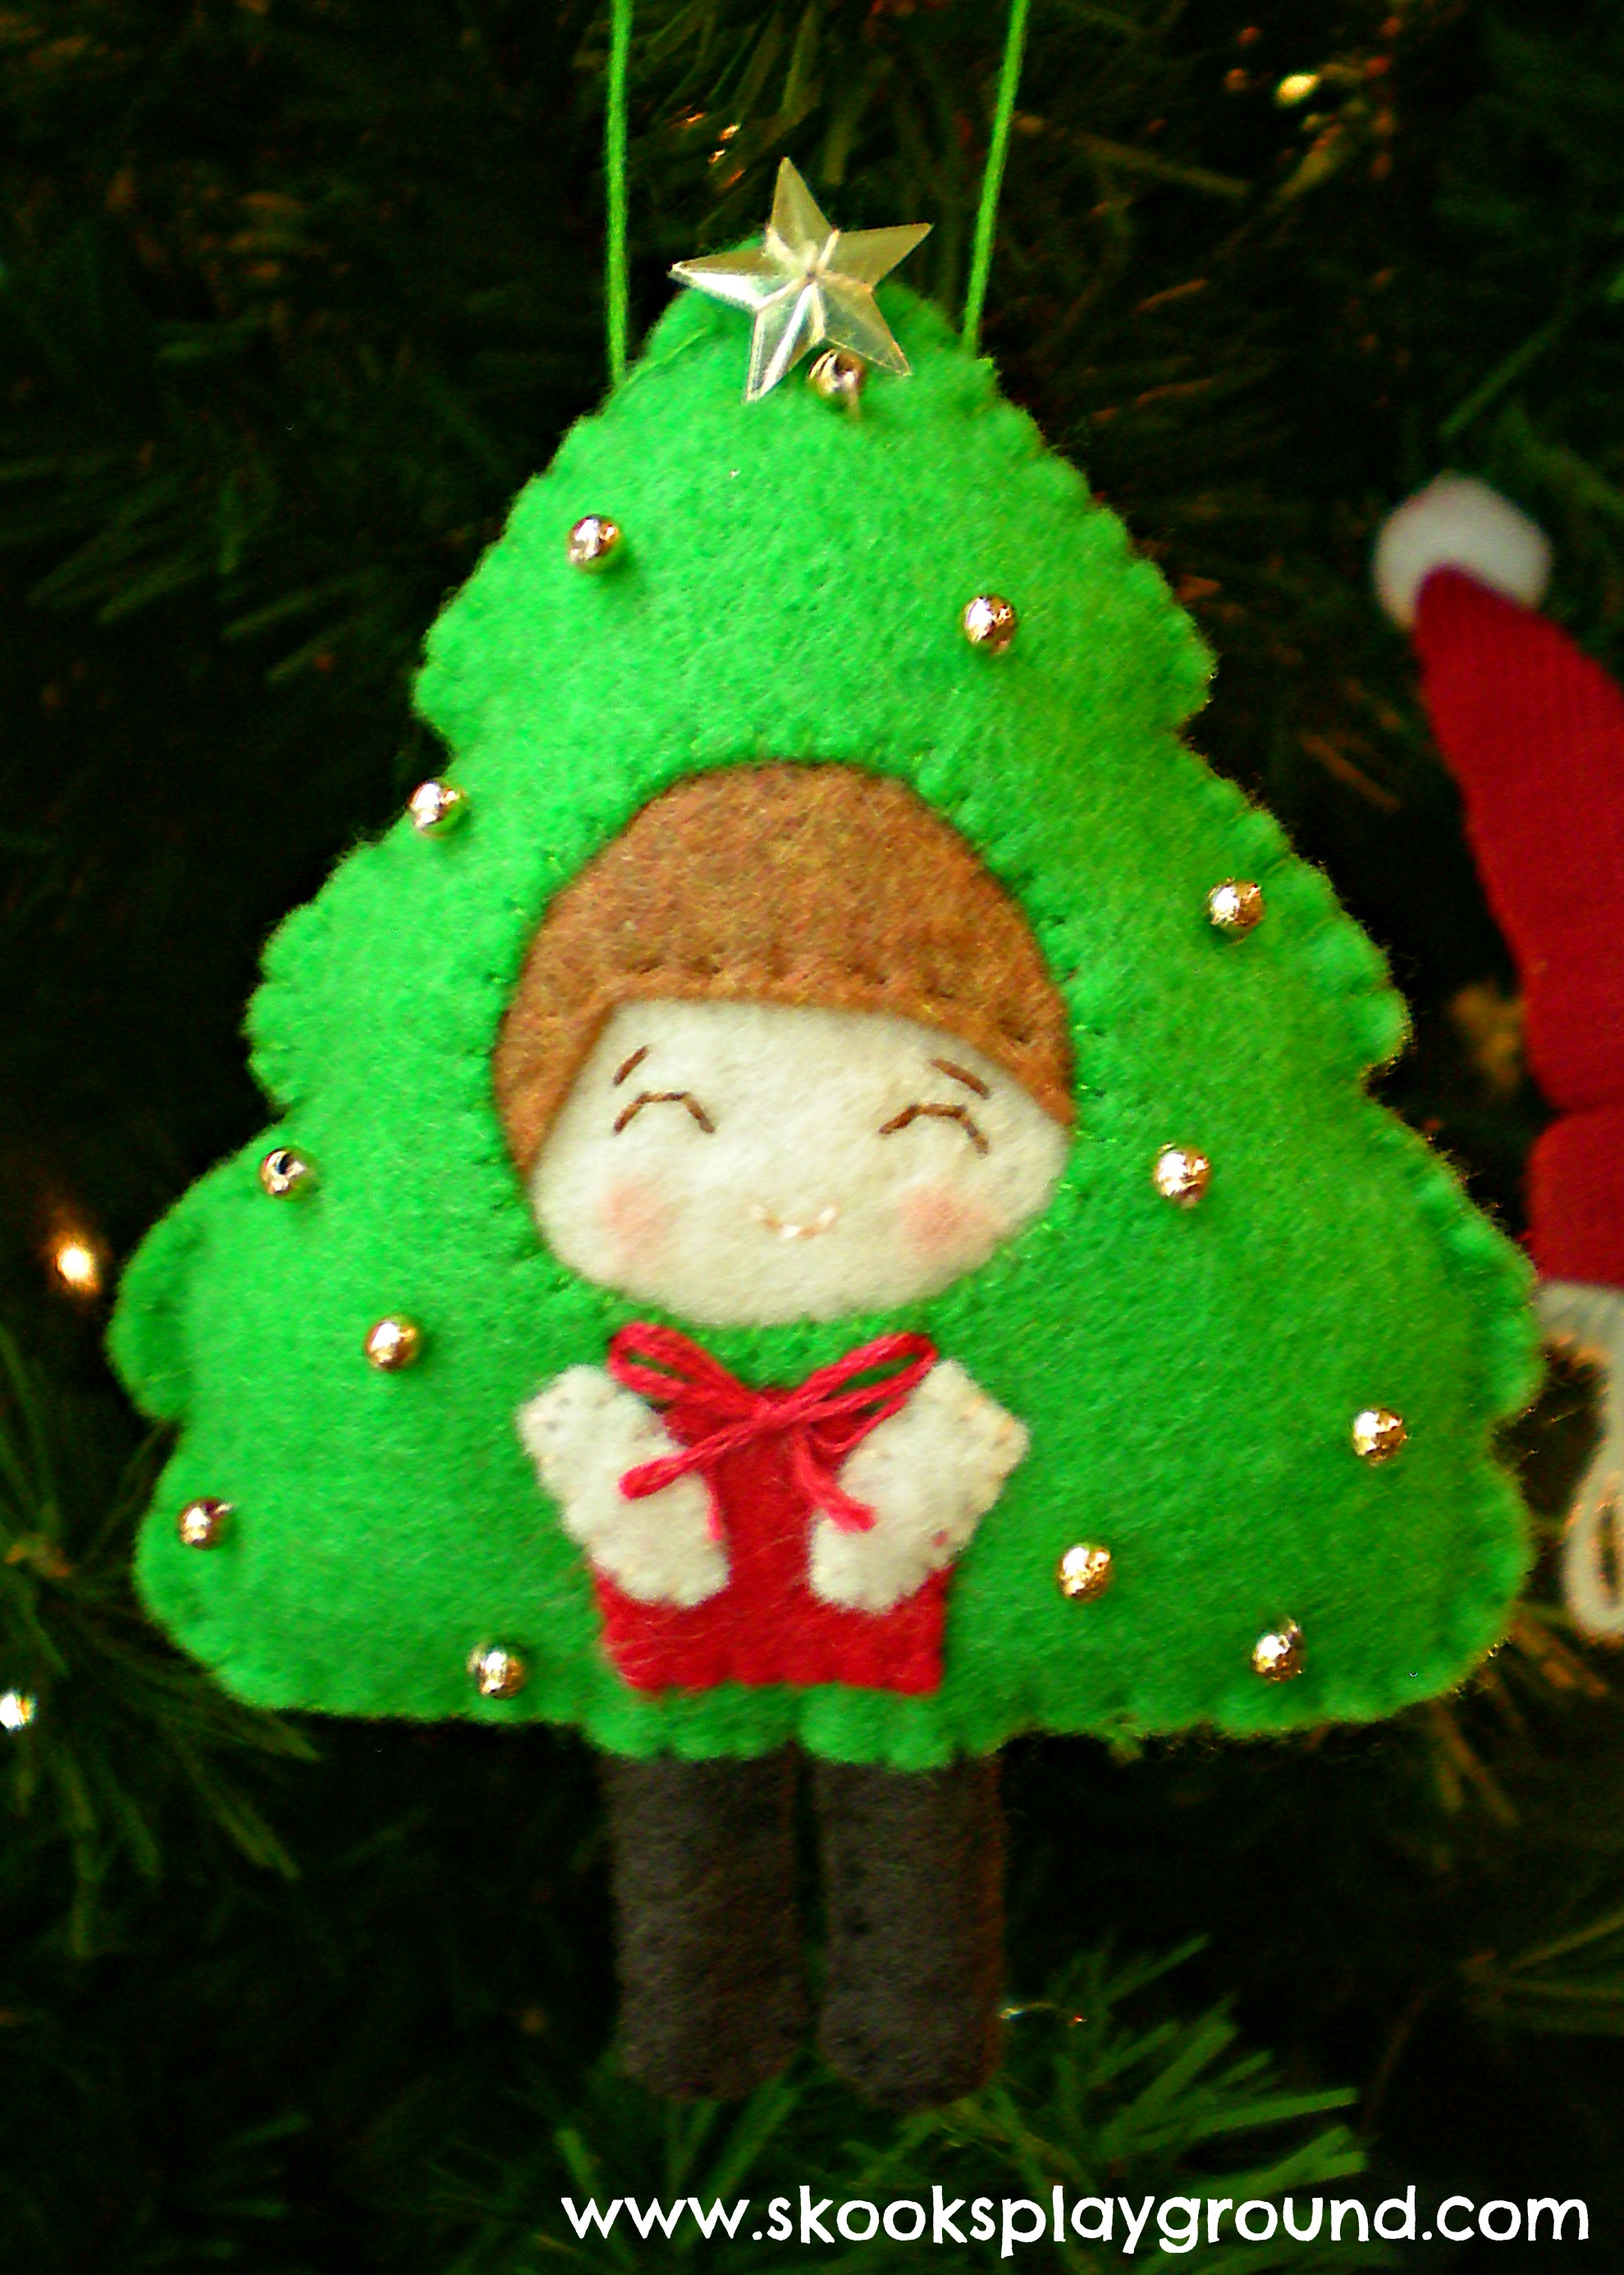 Little Tree Boy for Kee-ku 2012